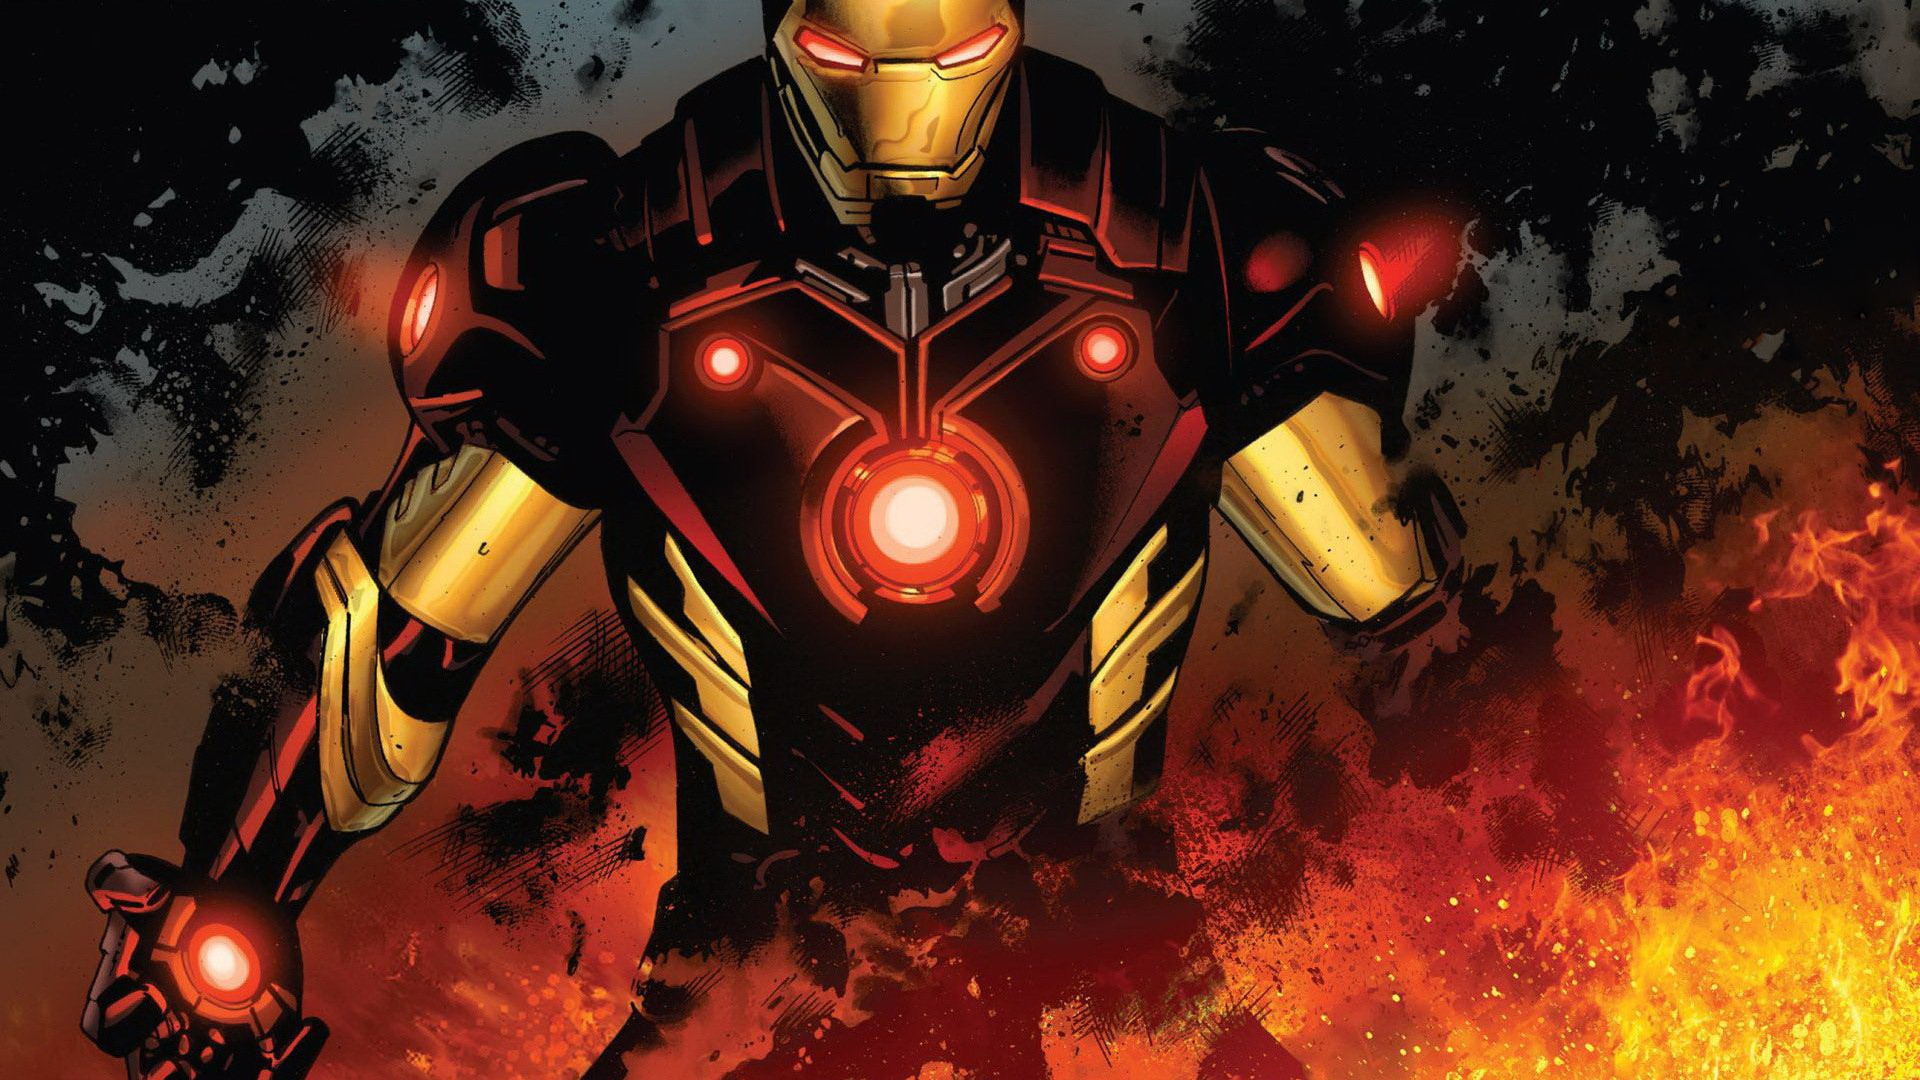 WallpapersWide  Iron Man HD Wallpapers  Backgrounds  Wallpaper Page  1920x1080